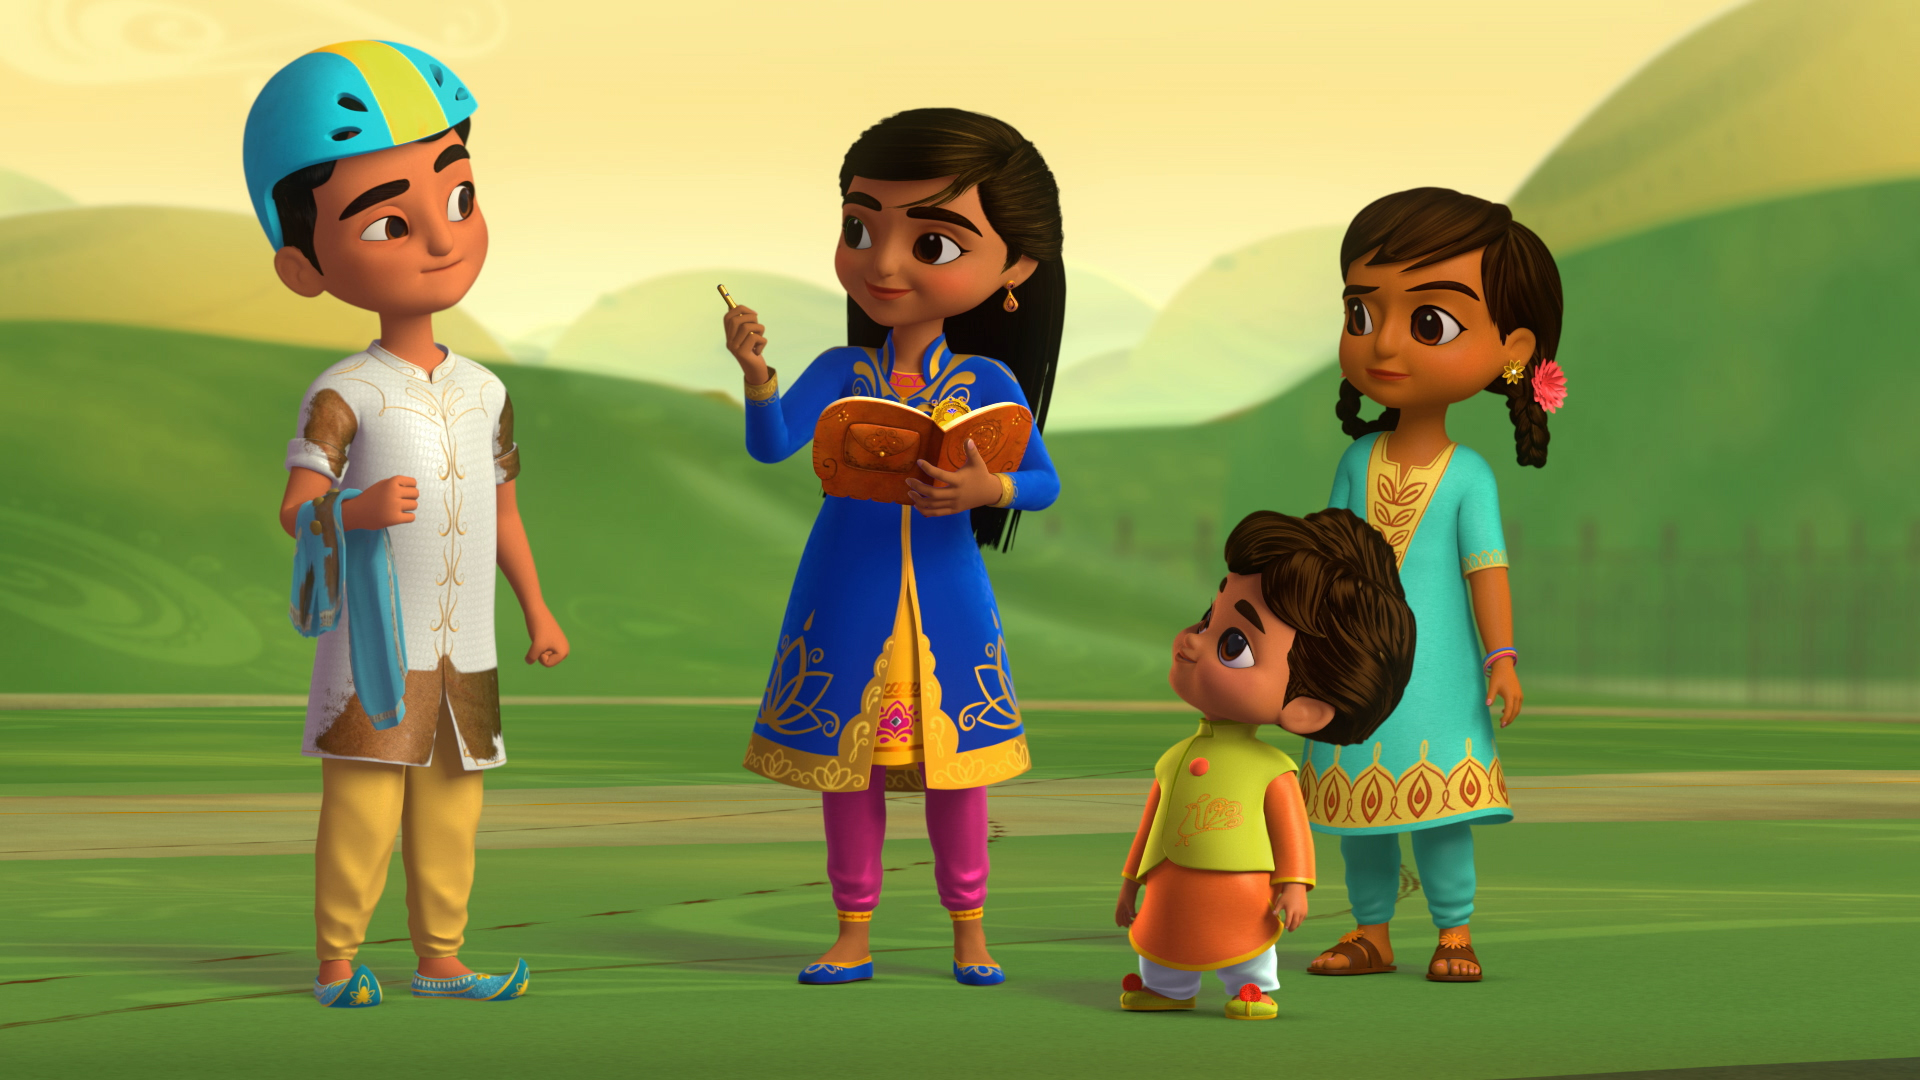 Mira, royal detective, with Prince Veer solving a case (Disney Junior)